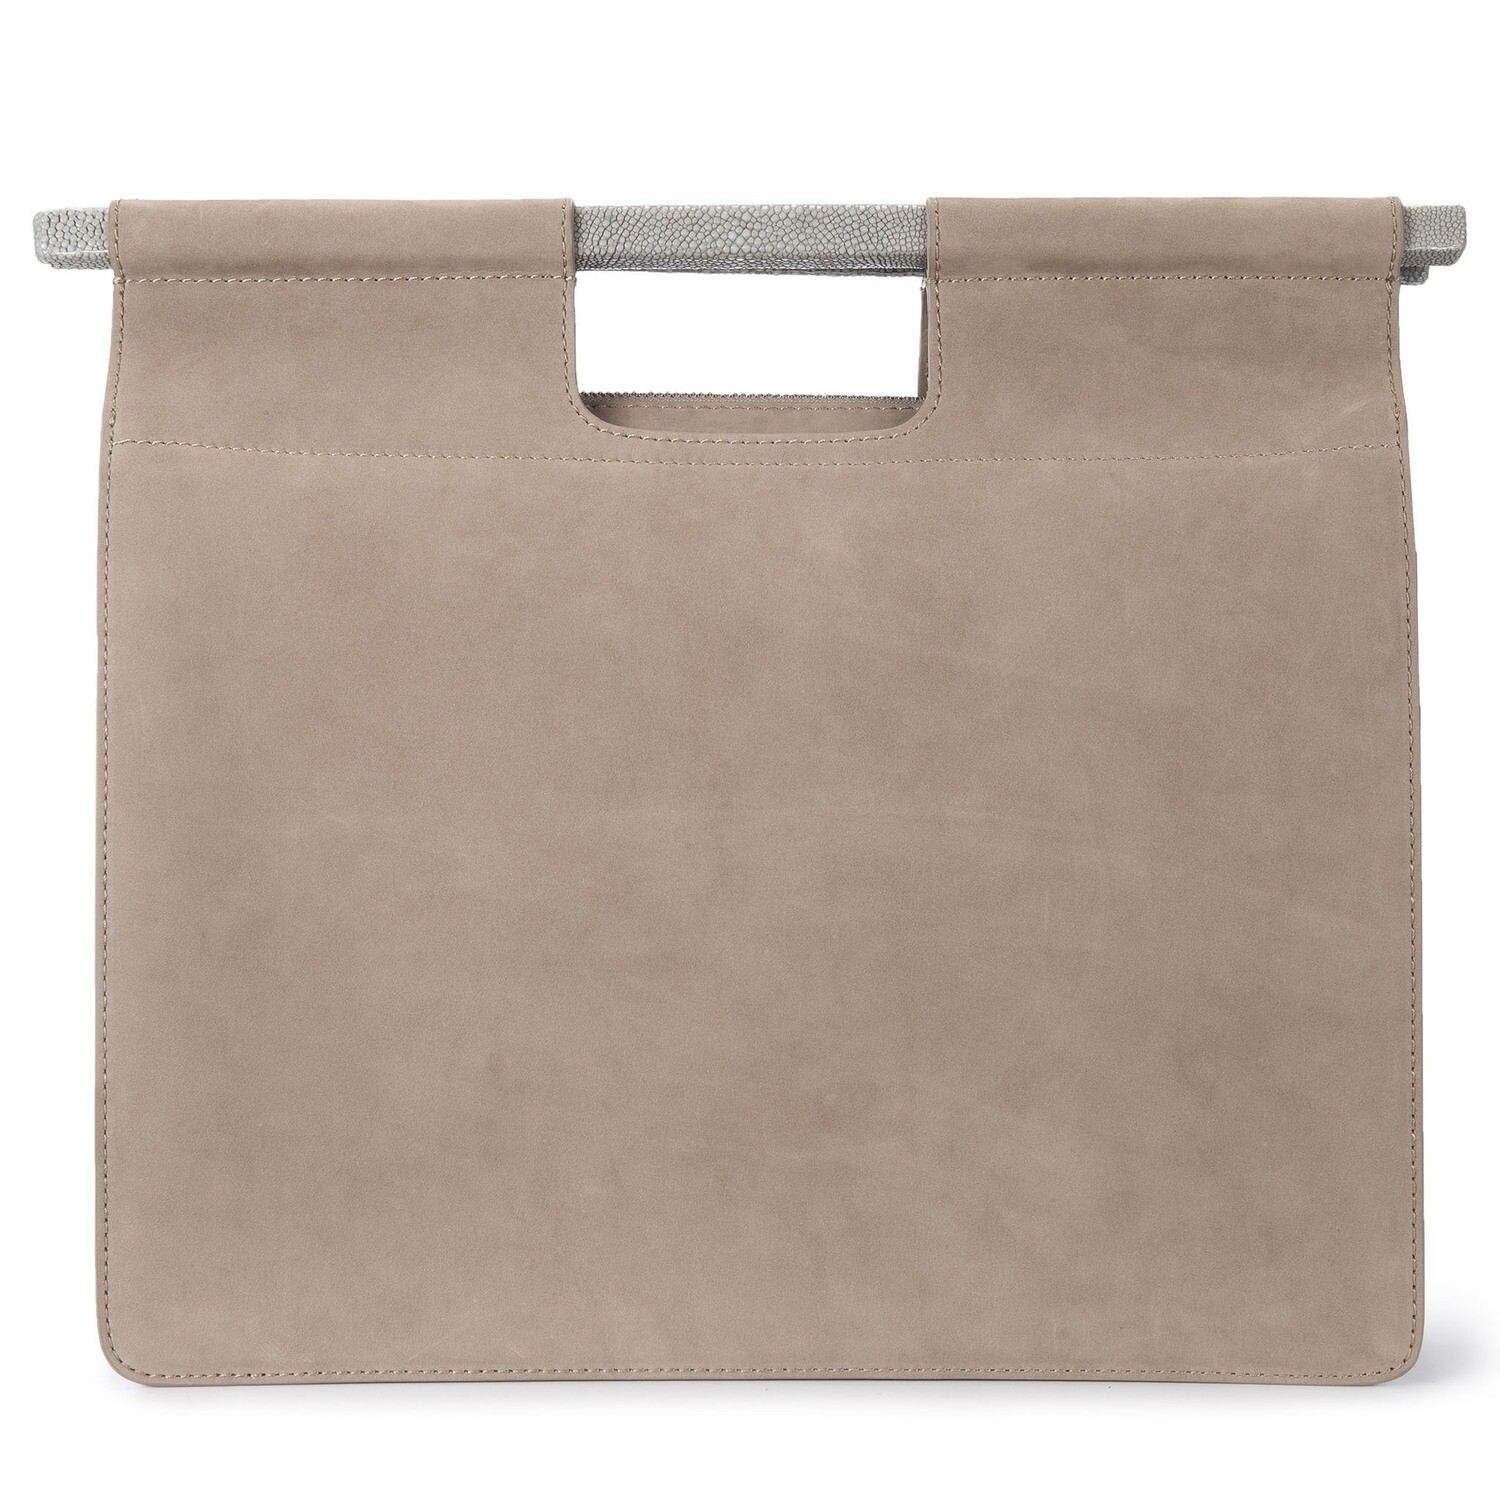 Work Tote with Strap, Taupe Nubuck leather